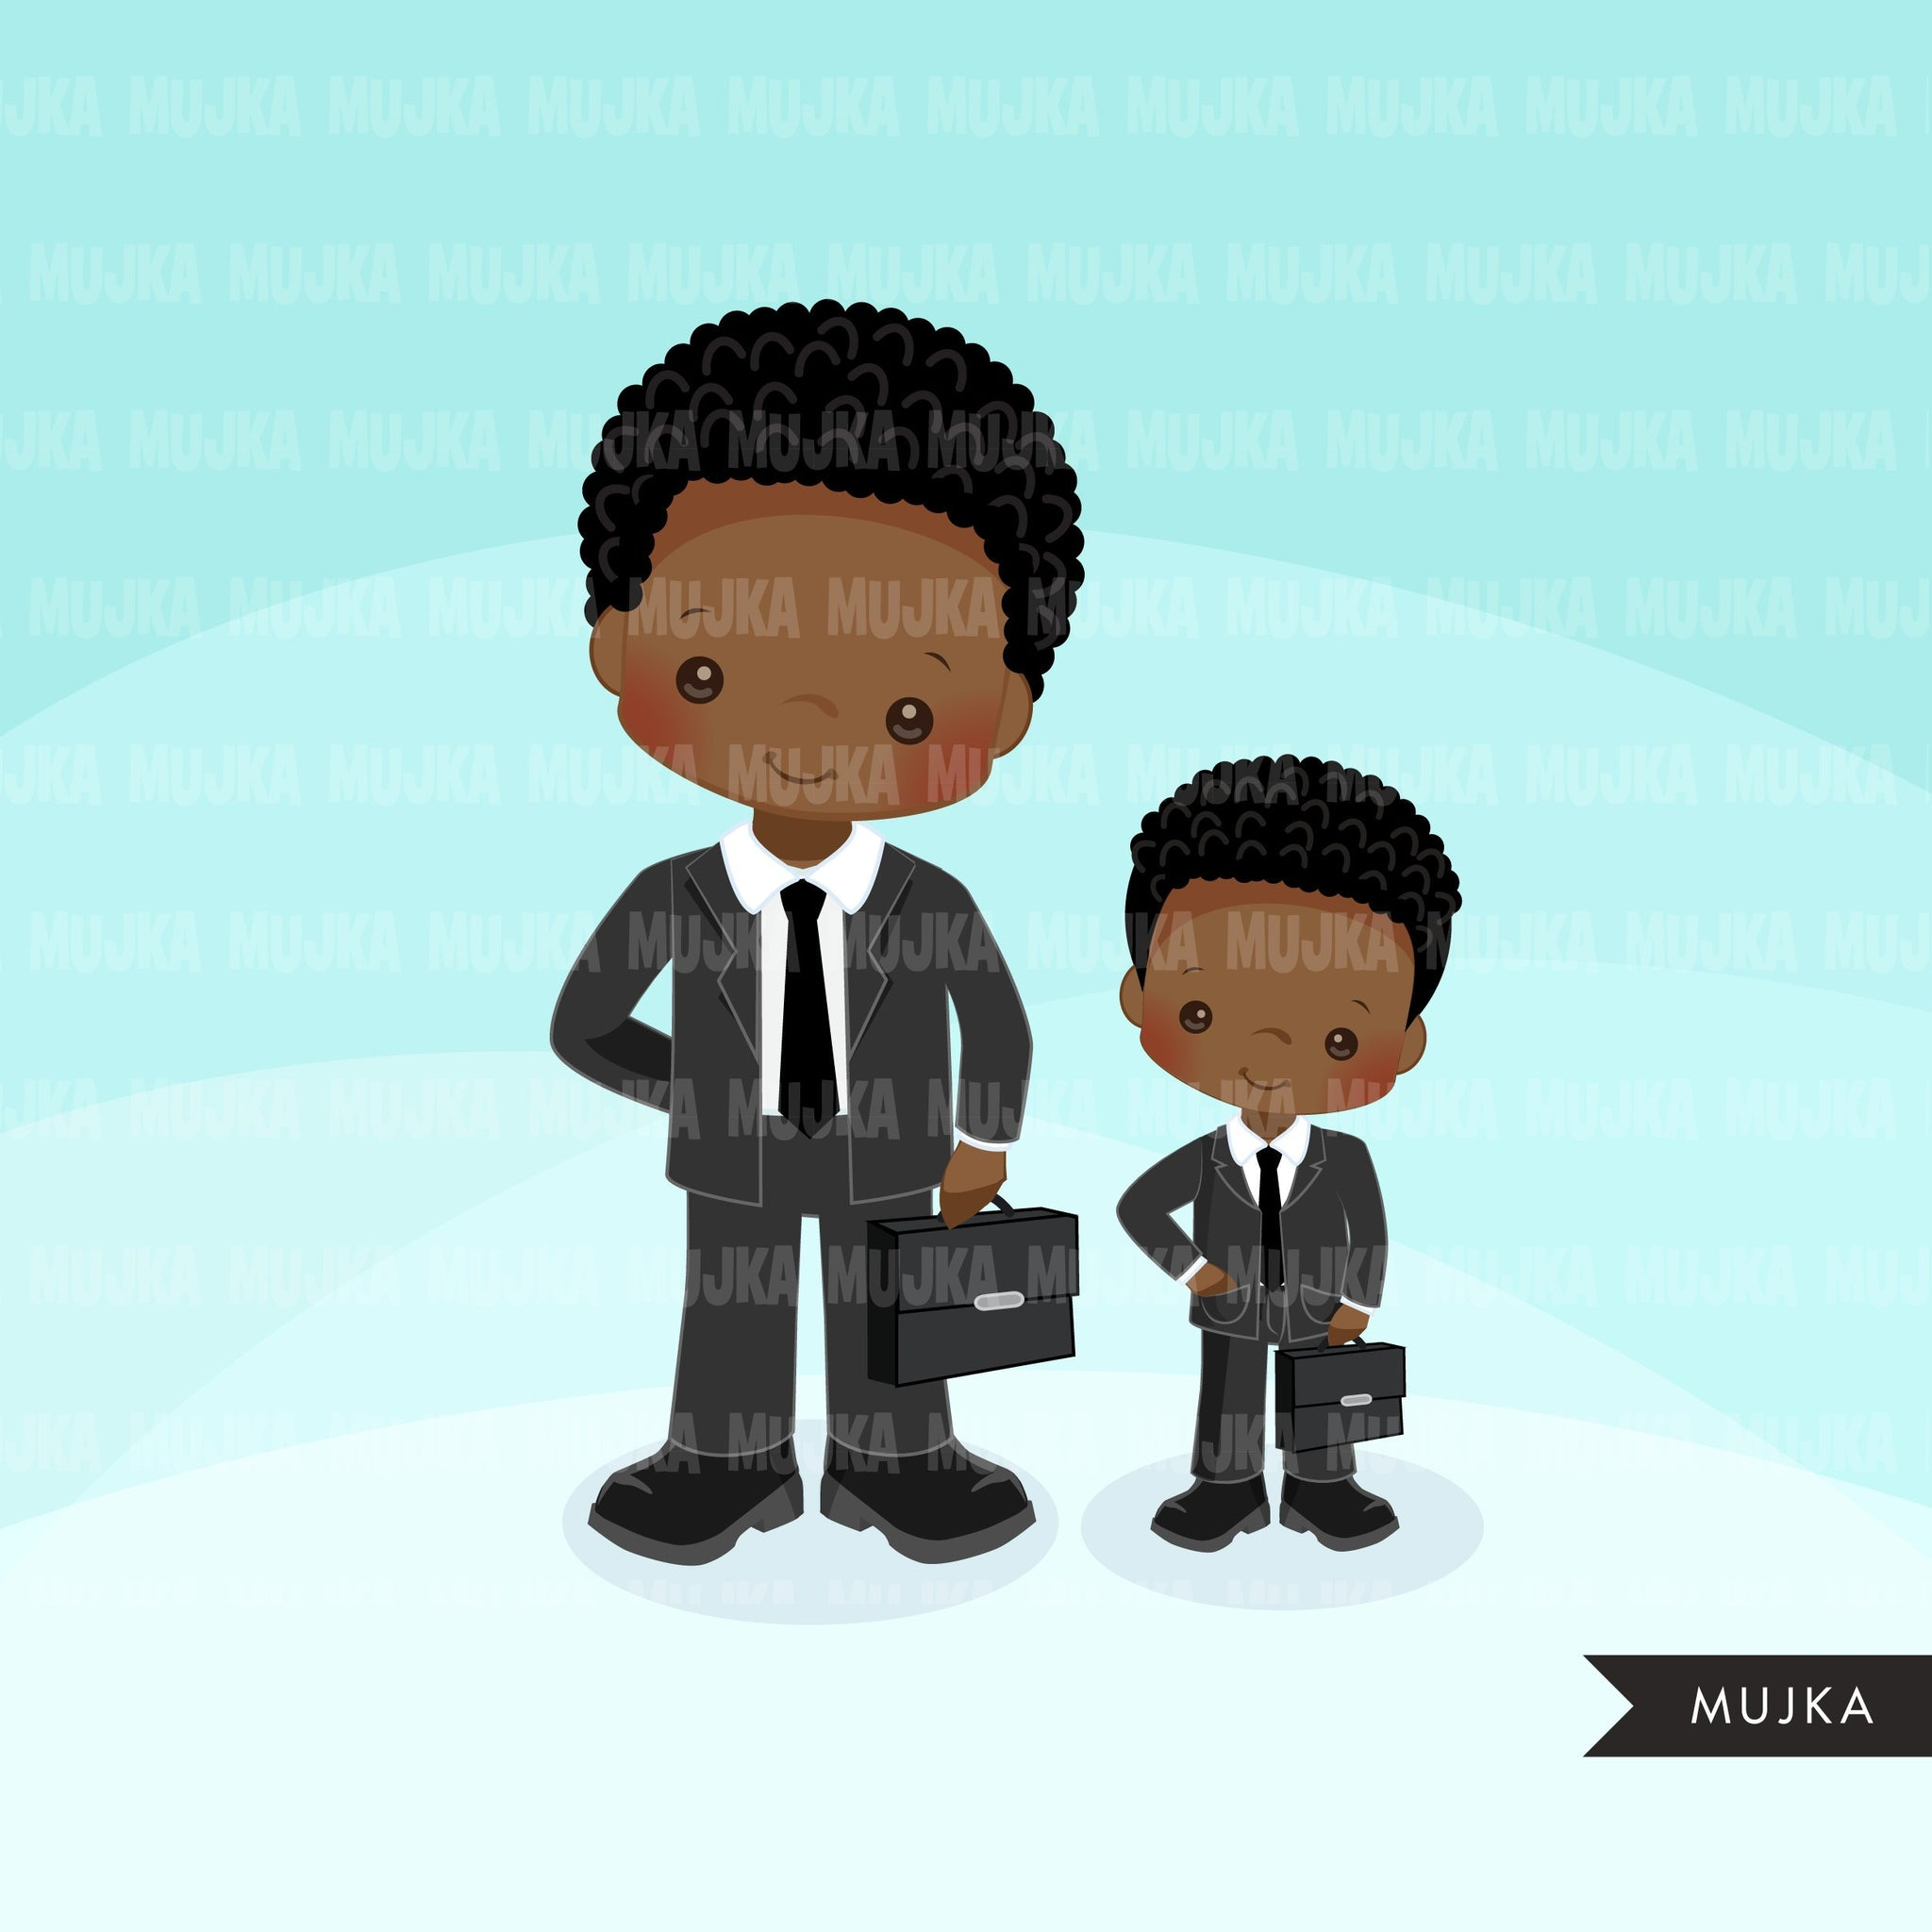 Boy boss little entrepreneur clipart. Father's Day, Father and Son